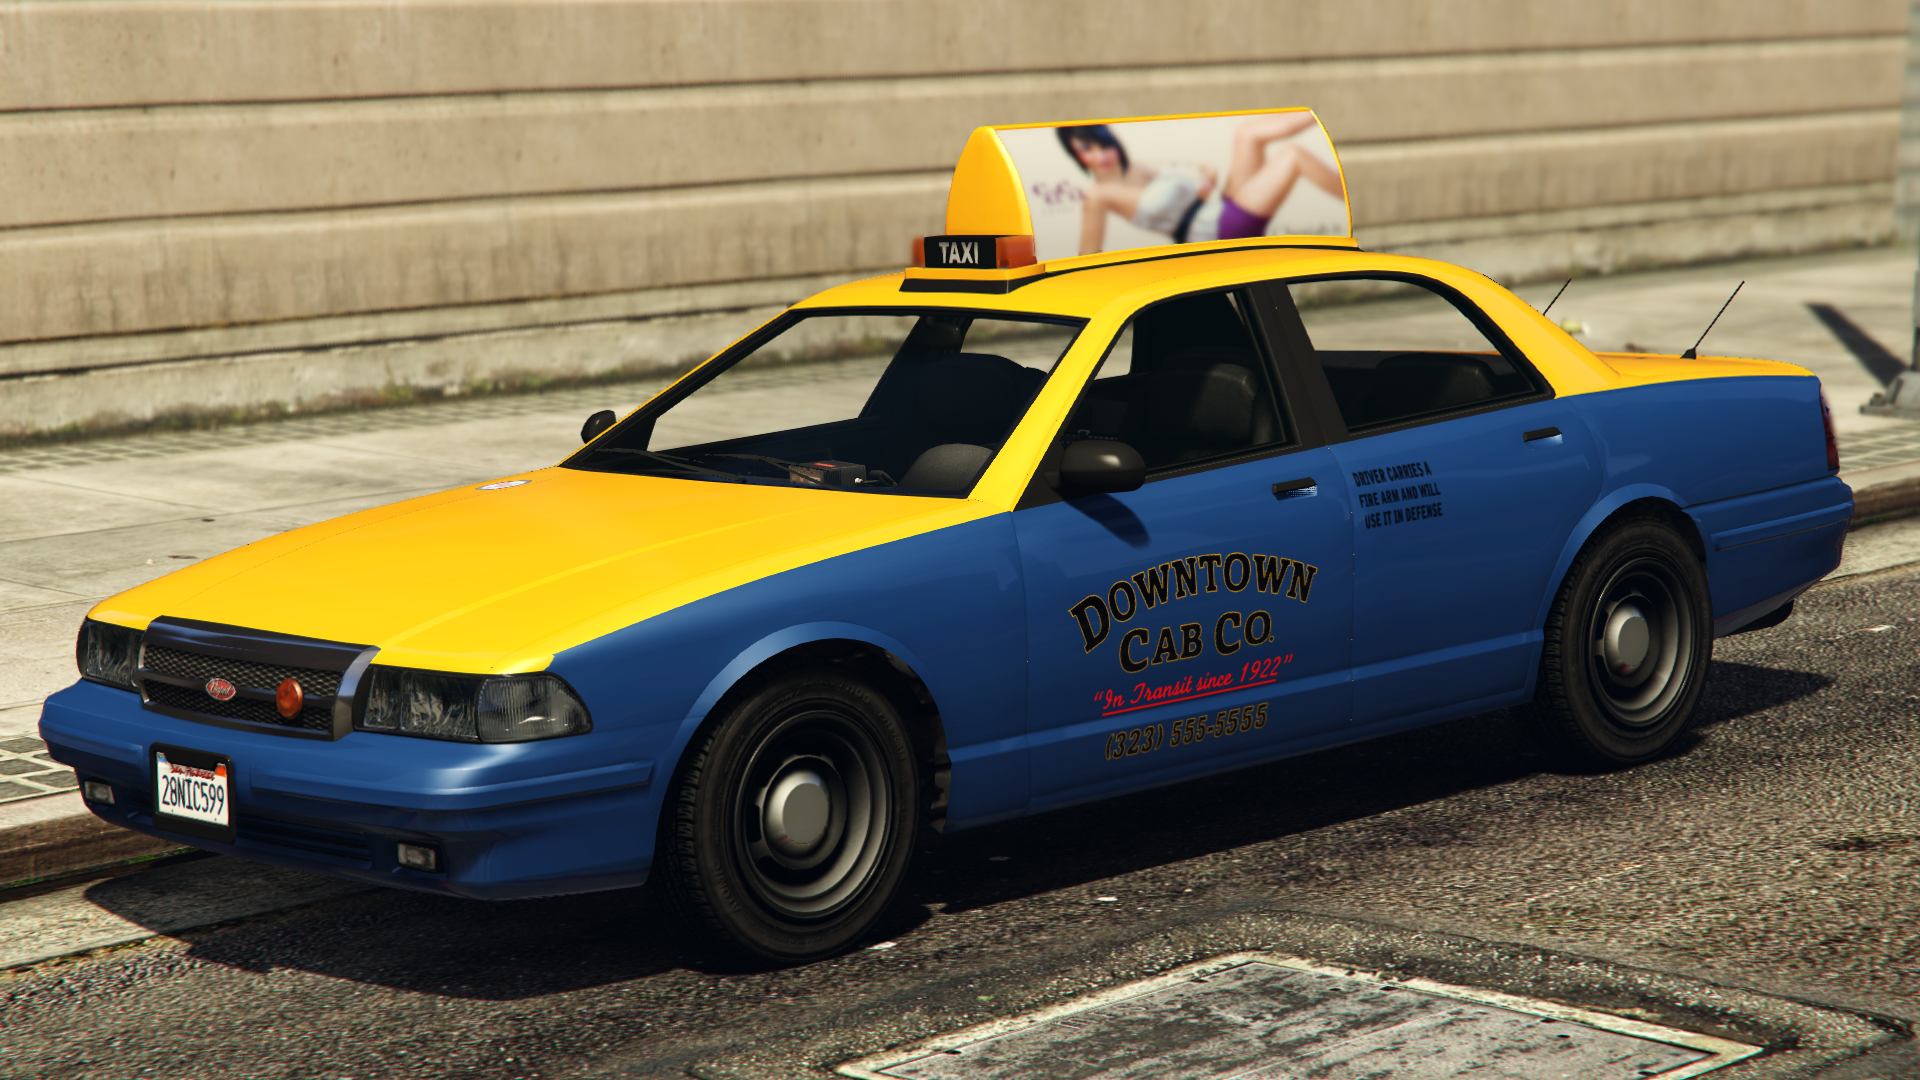 Taxi | GTA Wiki | FANDOM powered by Wikia